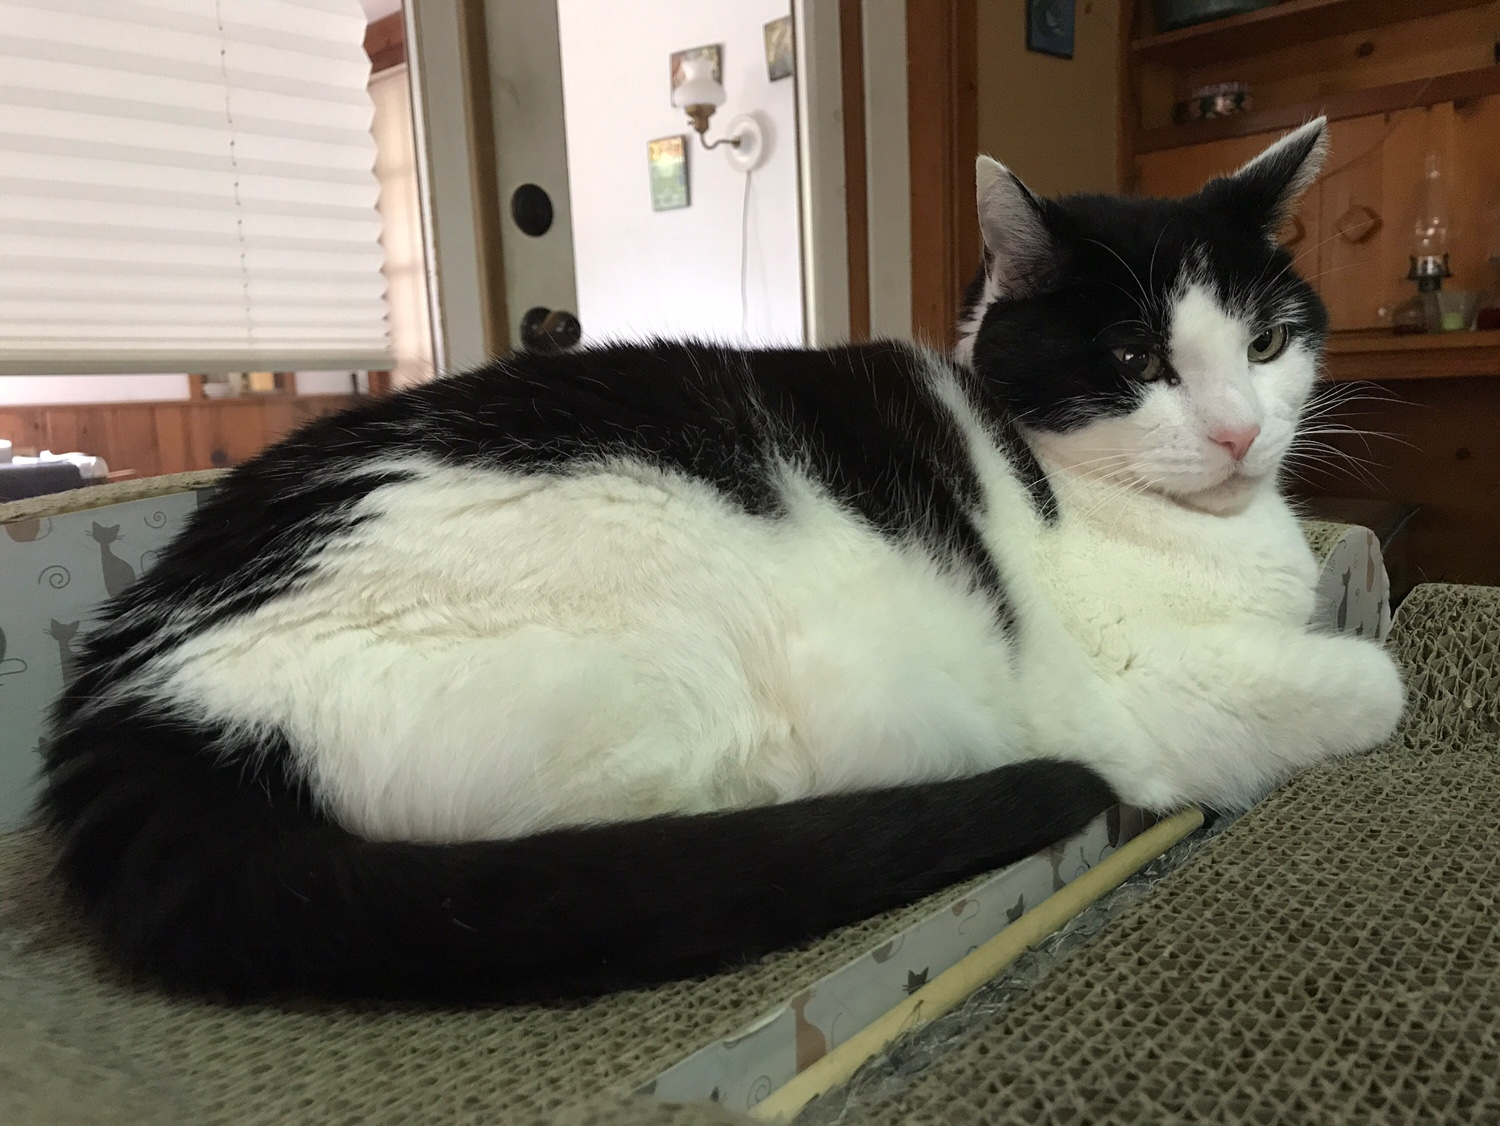 Cat chat with caren and cody an angel of a cat sofa scratcher bed - Cat bed scratcher ...